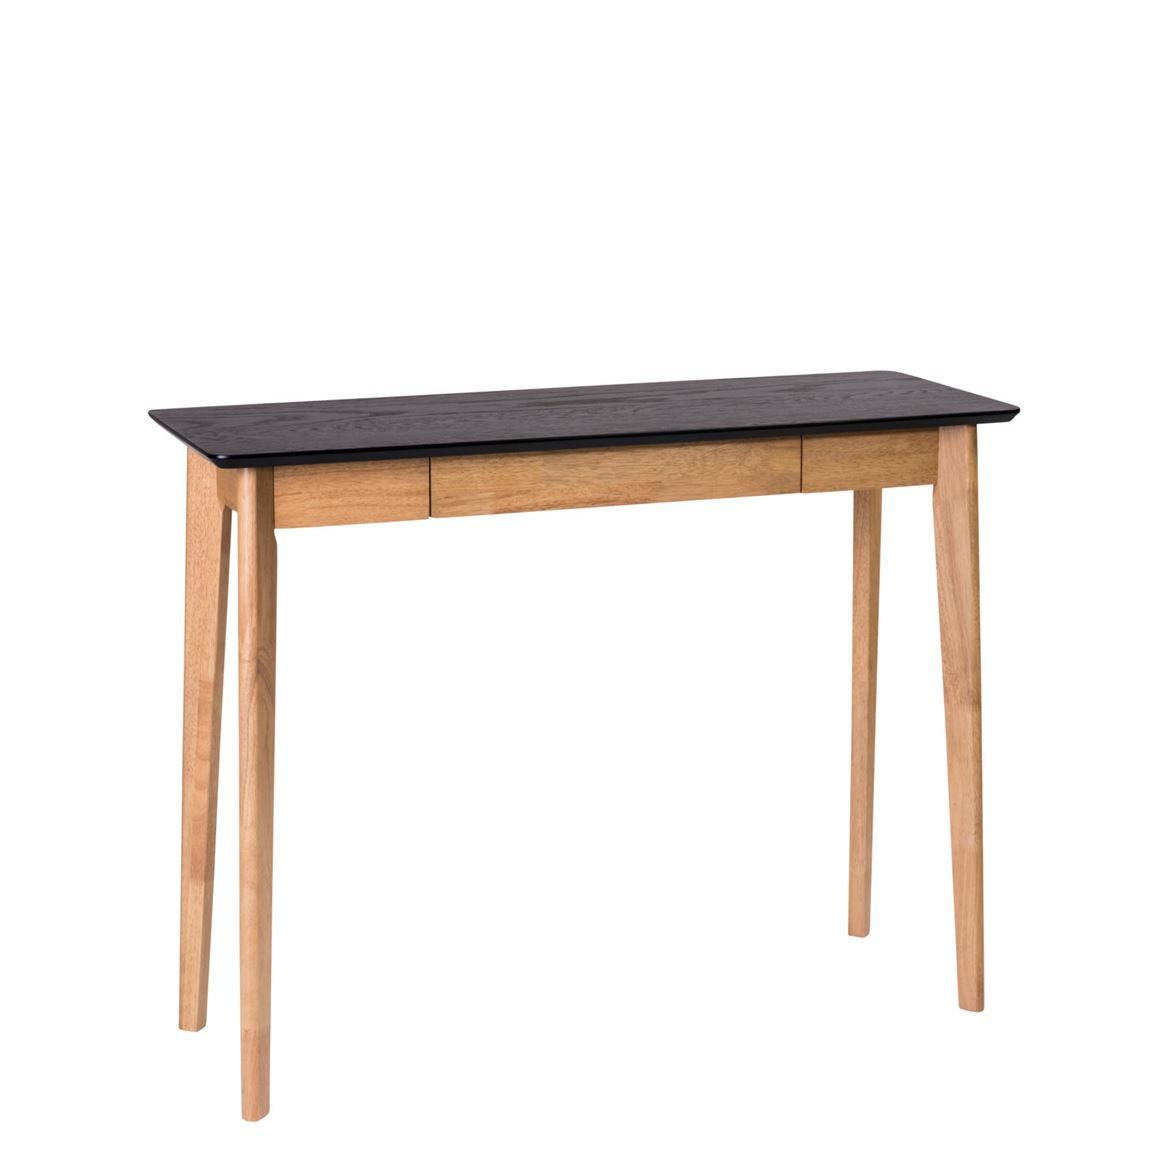 HERNING Mobile consolle nero H 85 x W 40 x L 110 cm_herning-mobile-consolle-nero-h-85-x-w-40-x-l-110-cm